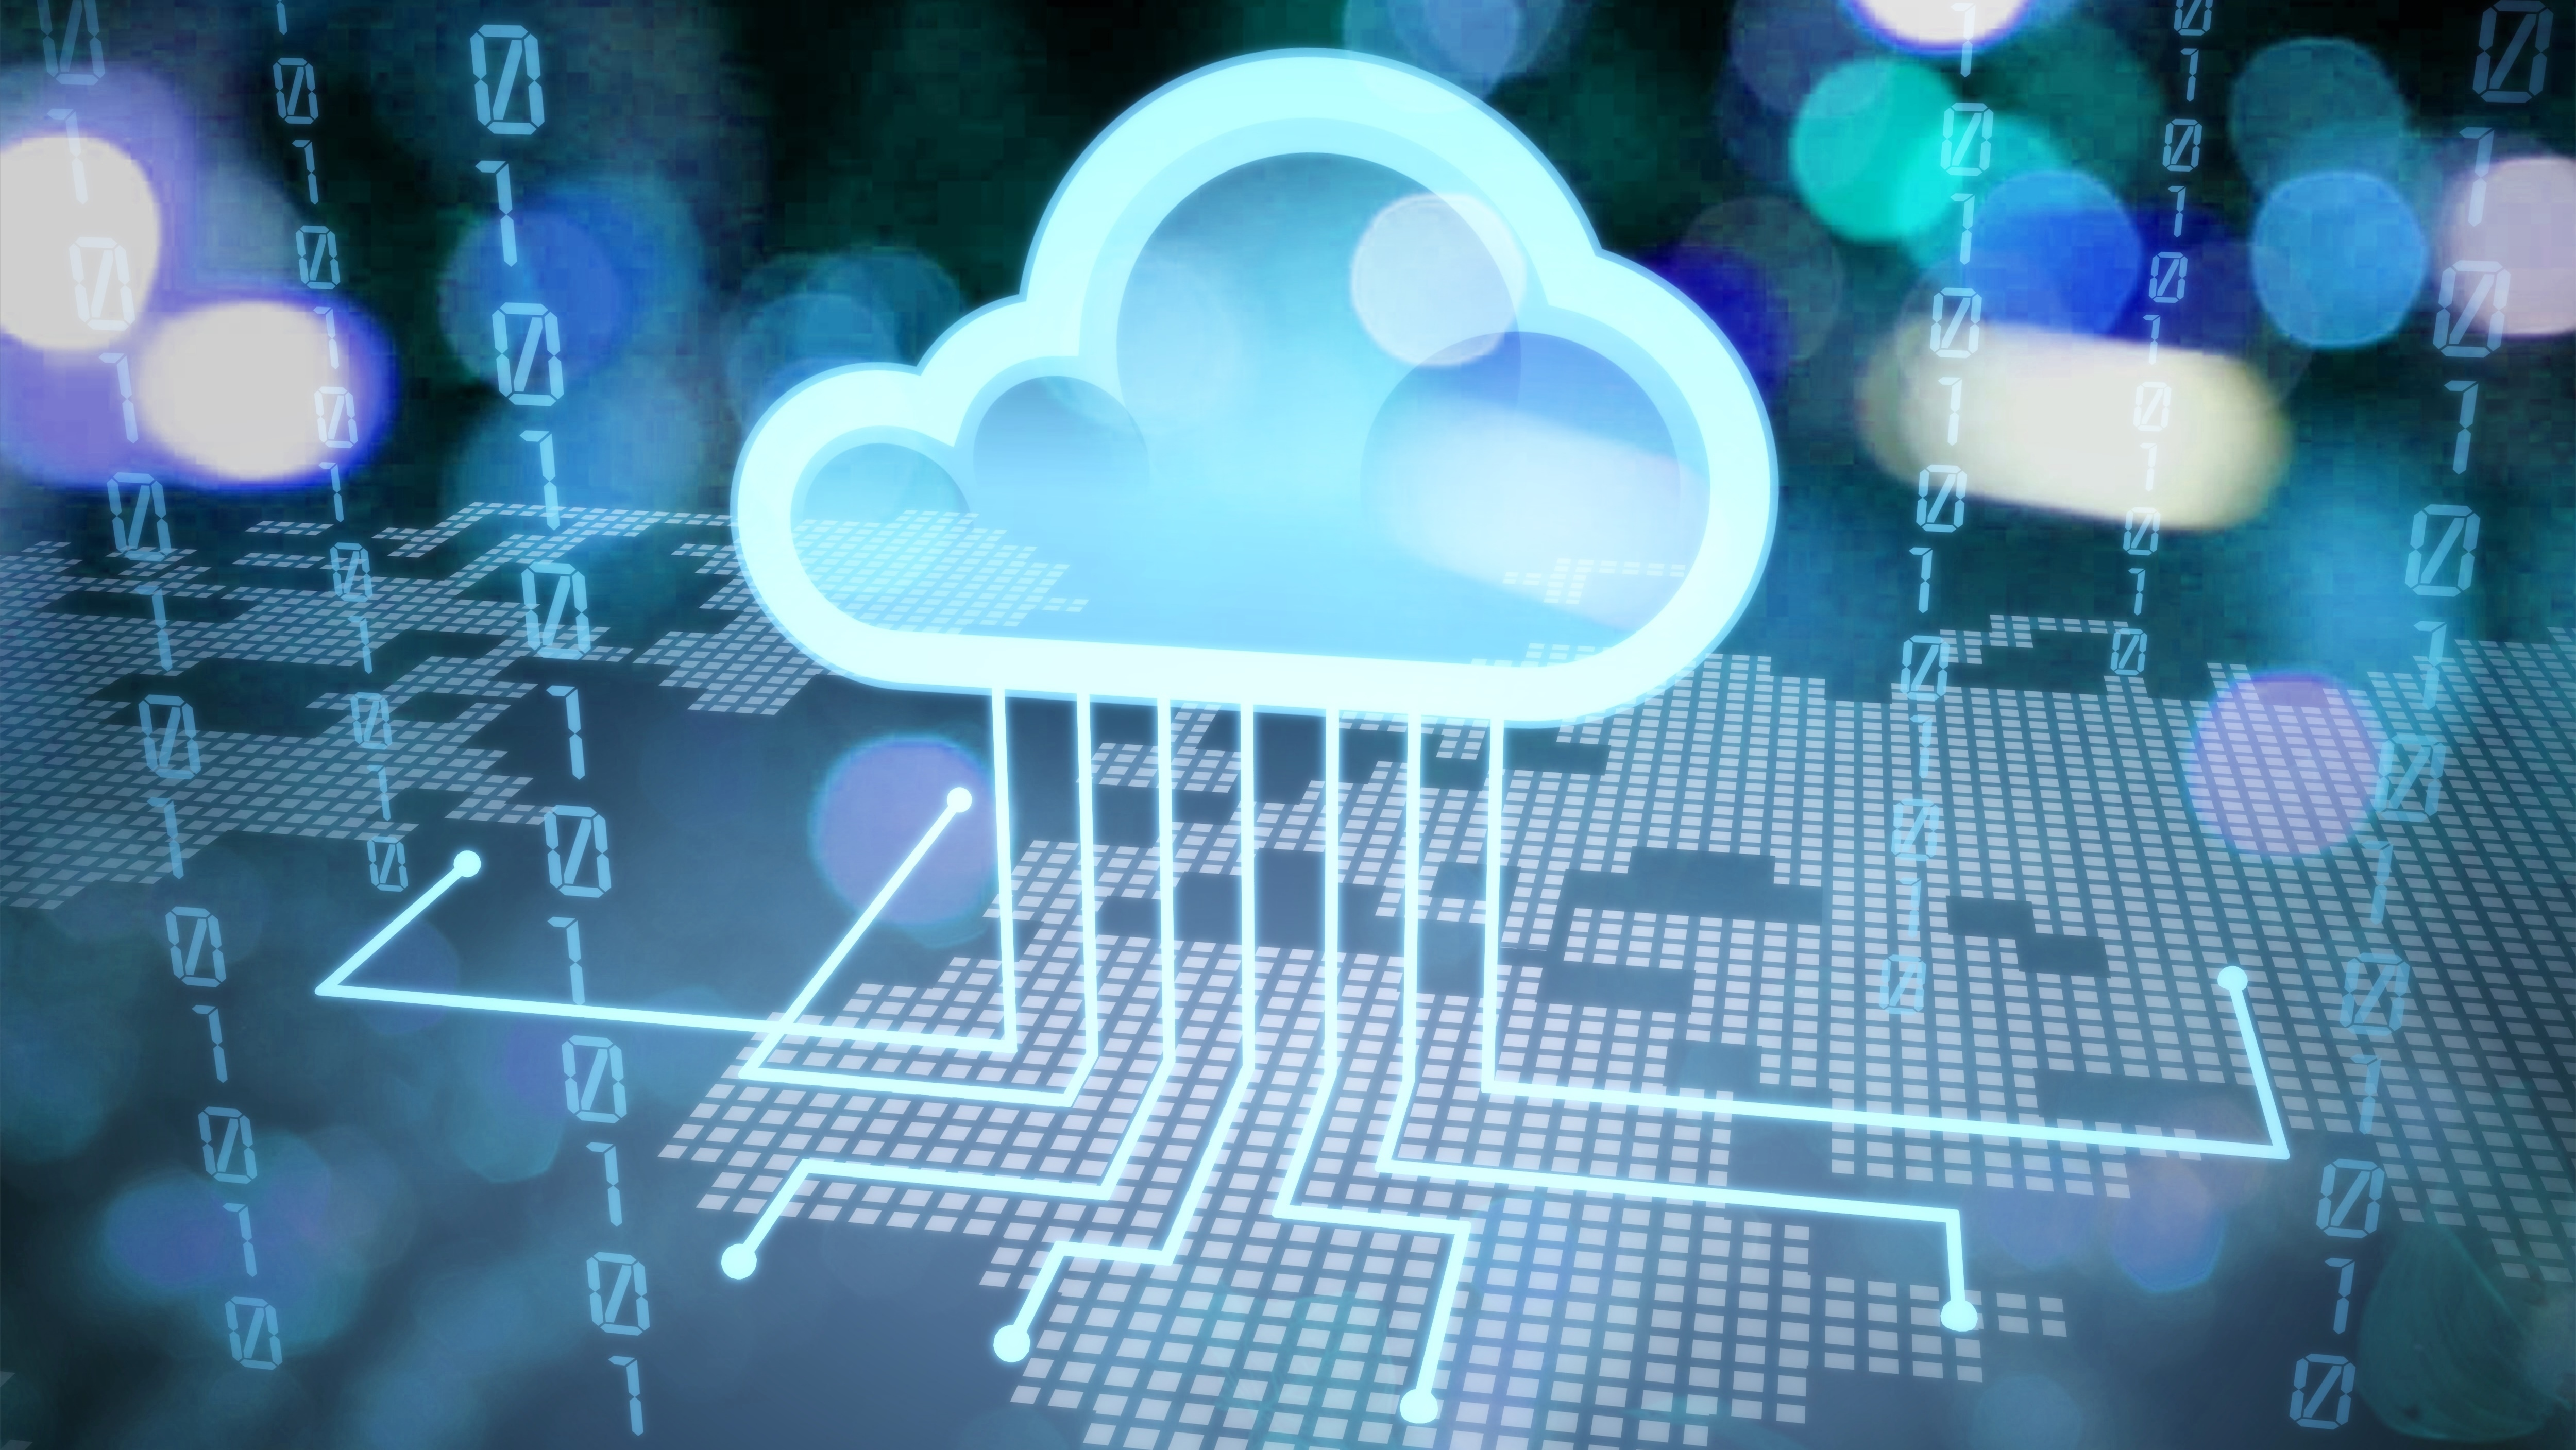 Cloud service icon with options and devices